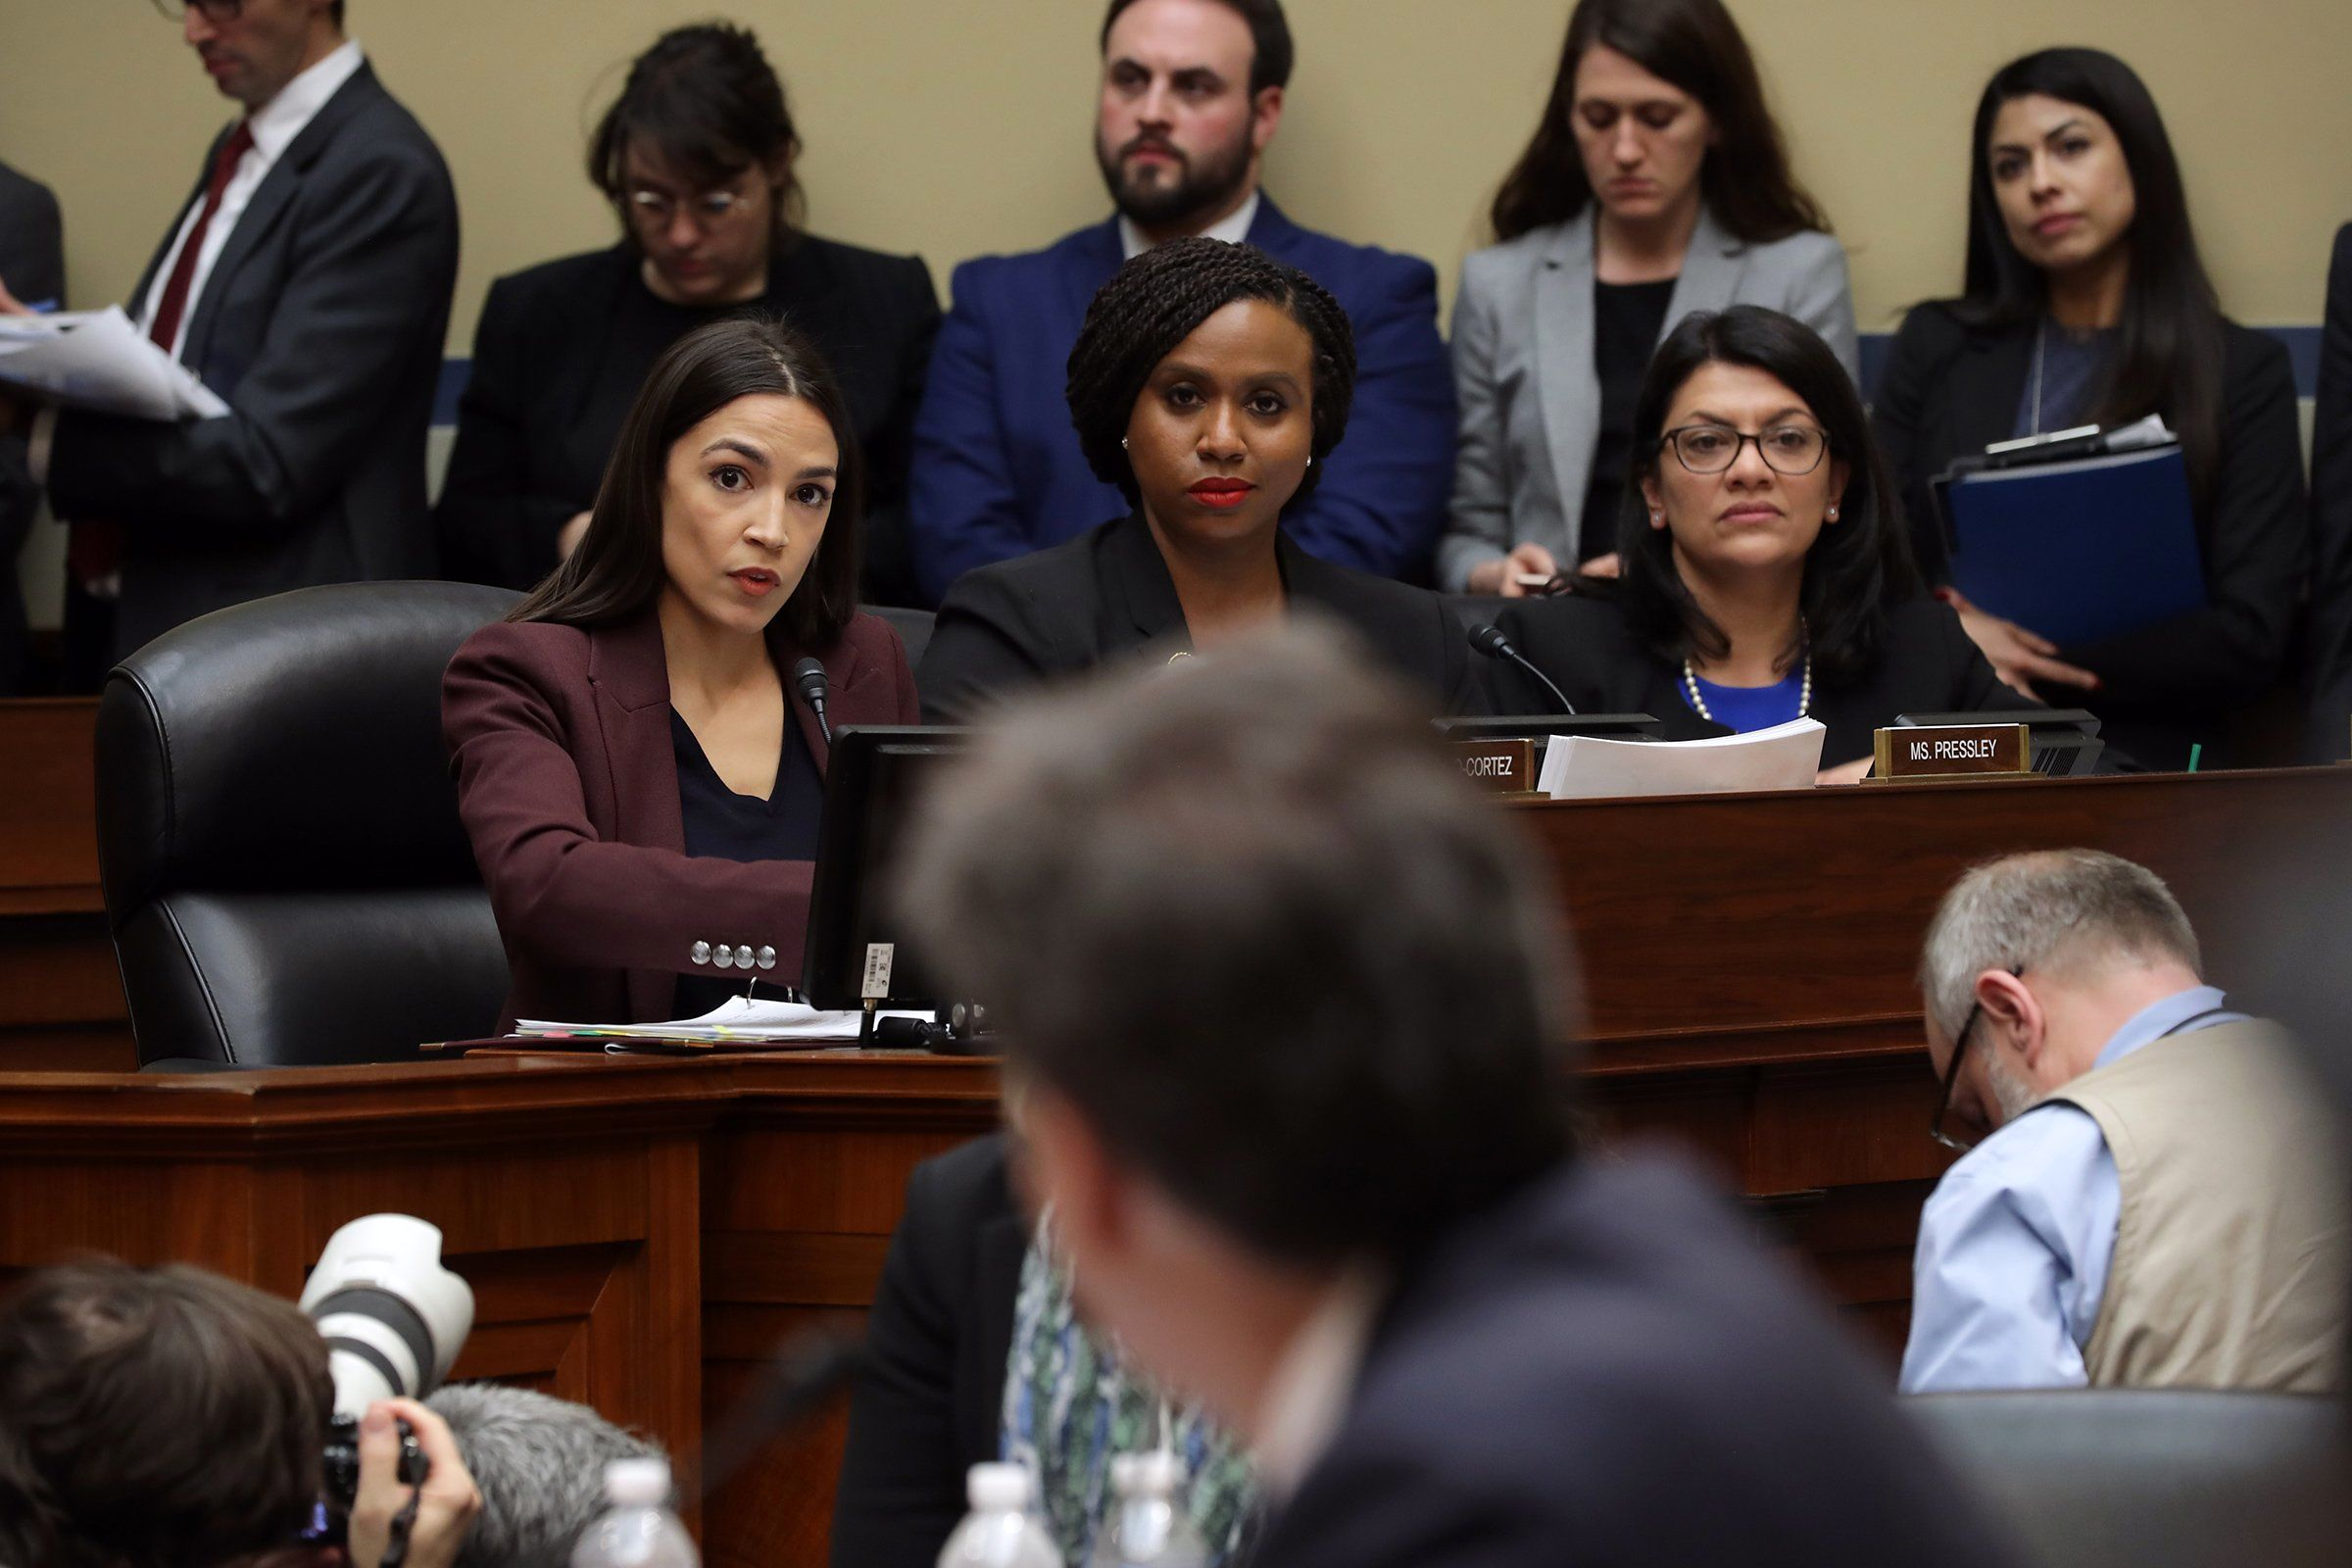 Reps. Alexandria Ocasio-Cortez (D-NY), Ayanna Pressley (D-MA) and Rashida Tlaib (D-MI) listen as Michael Cohen, former attorney and fixer for President Trump, testifies before the House Oversight Committee in Washington, D.C., on Feb. 27.